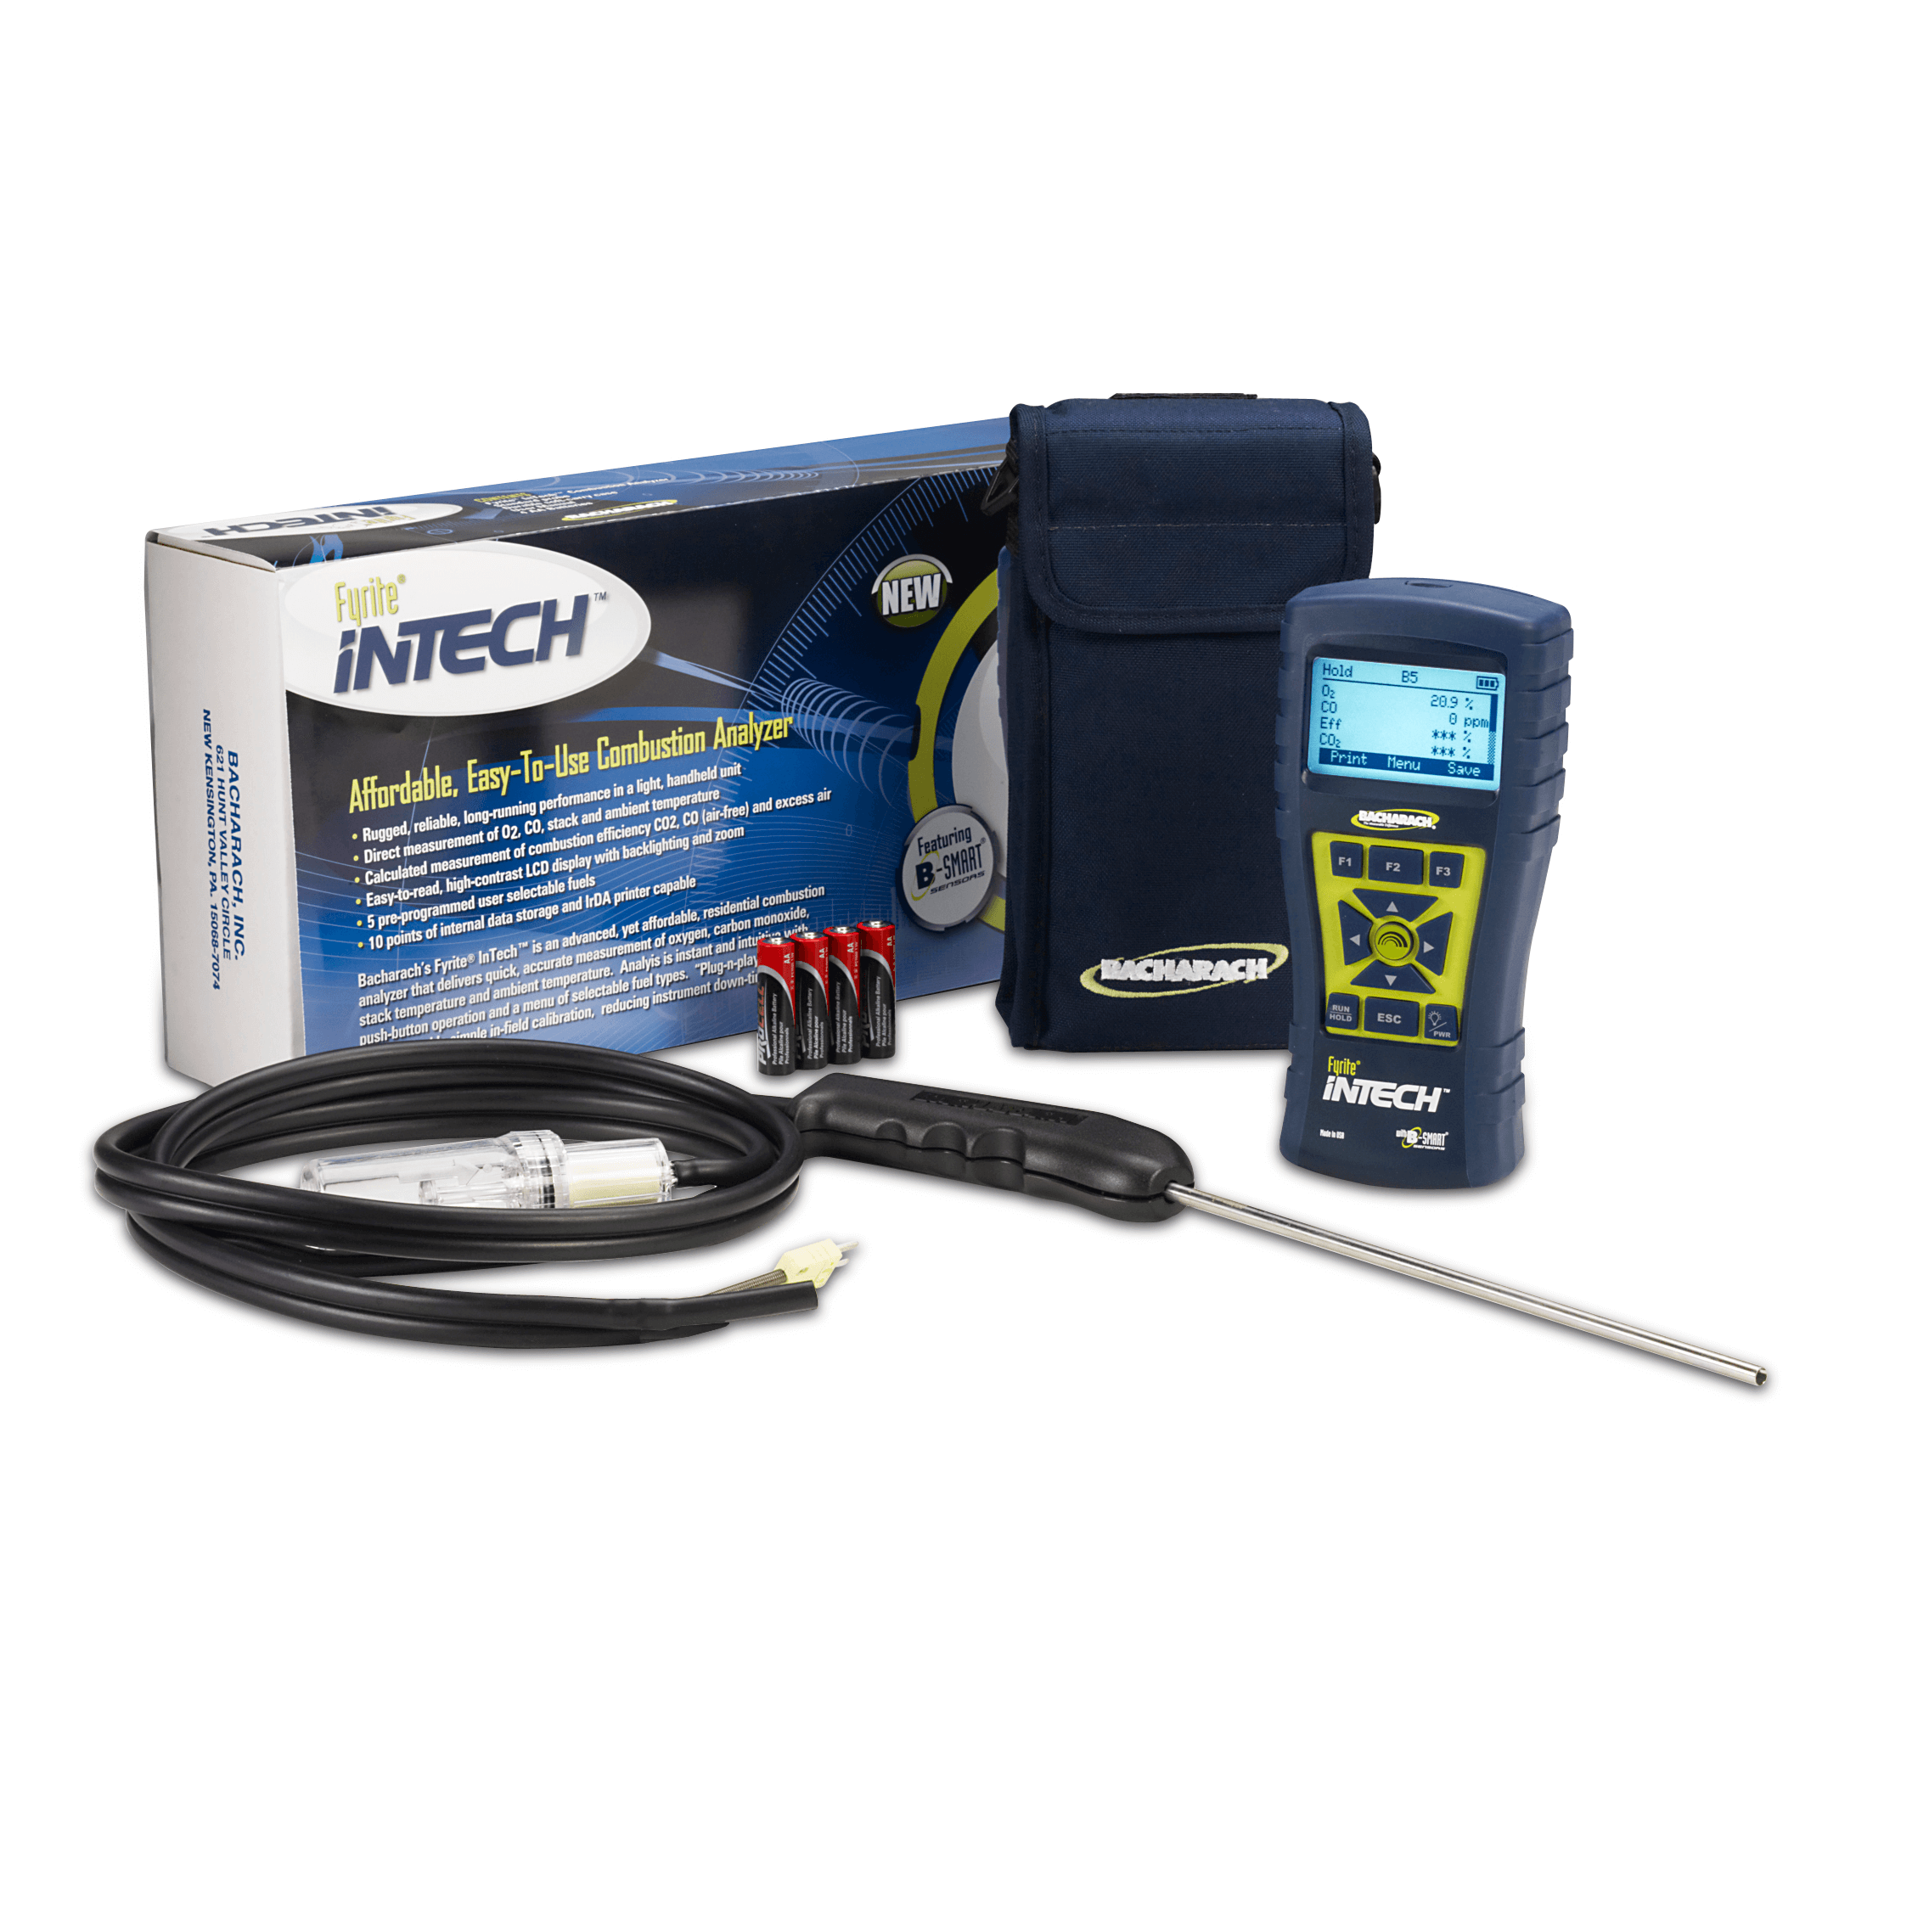 Bacharach 24-8511 Fyrite InTech Combustion Analyzer Basic Kit [Free 2nd Day Shipping]